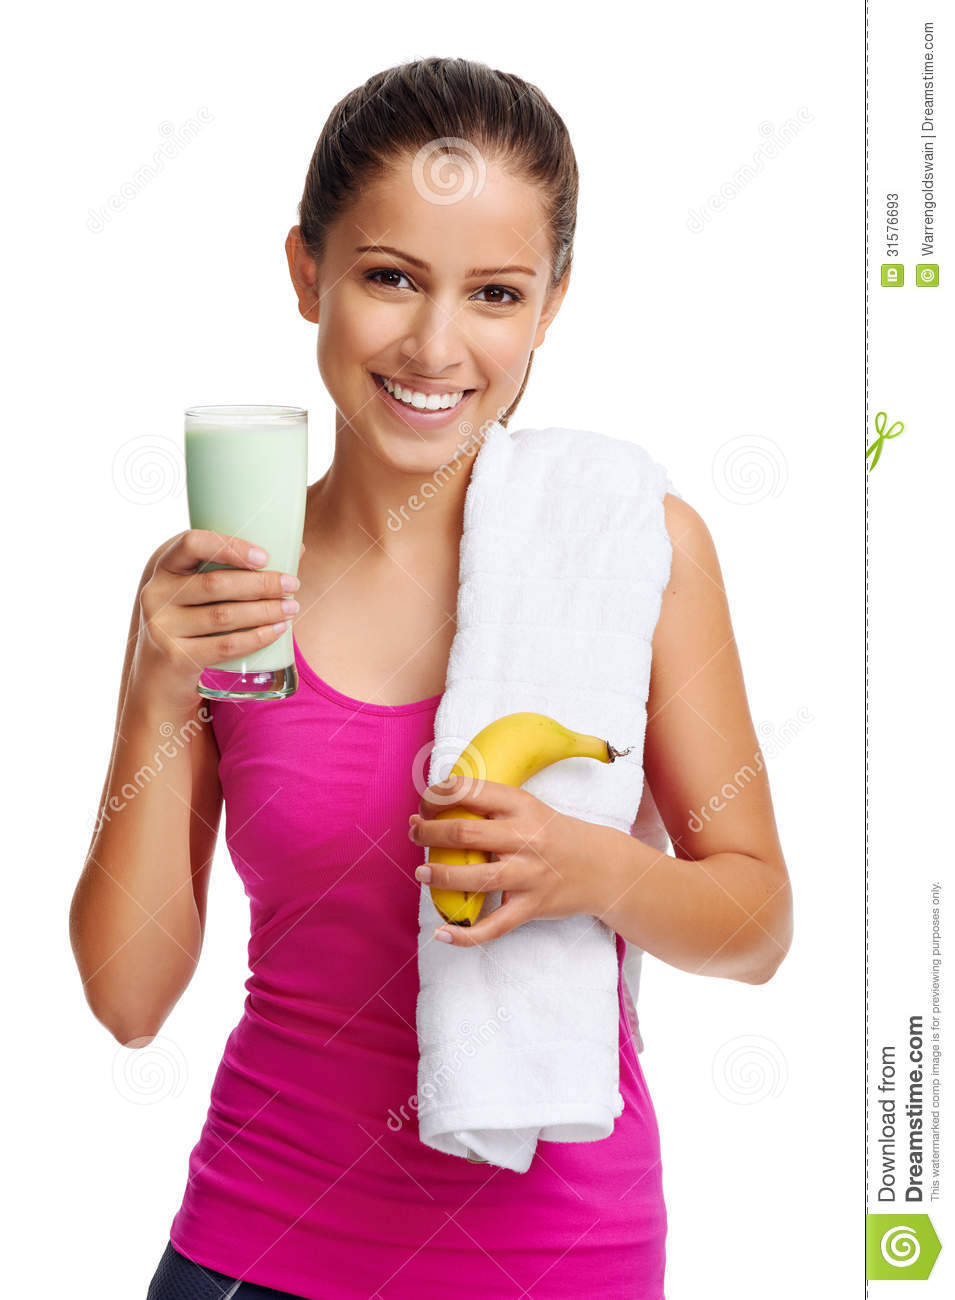 fitness and diet relationships and precautions